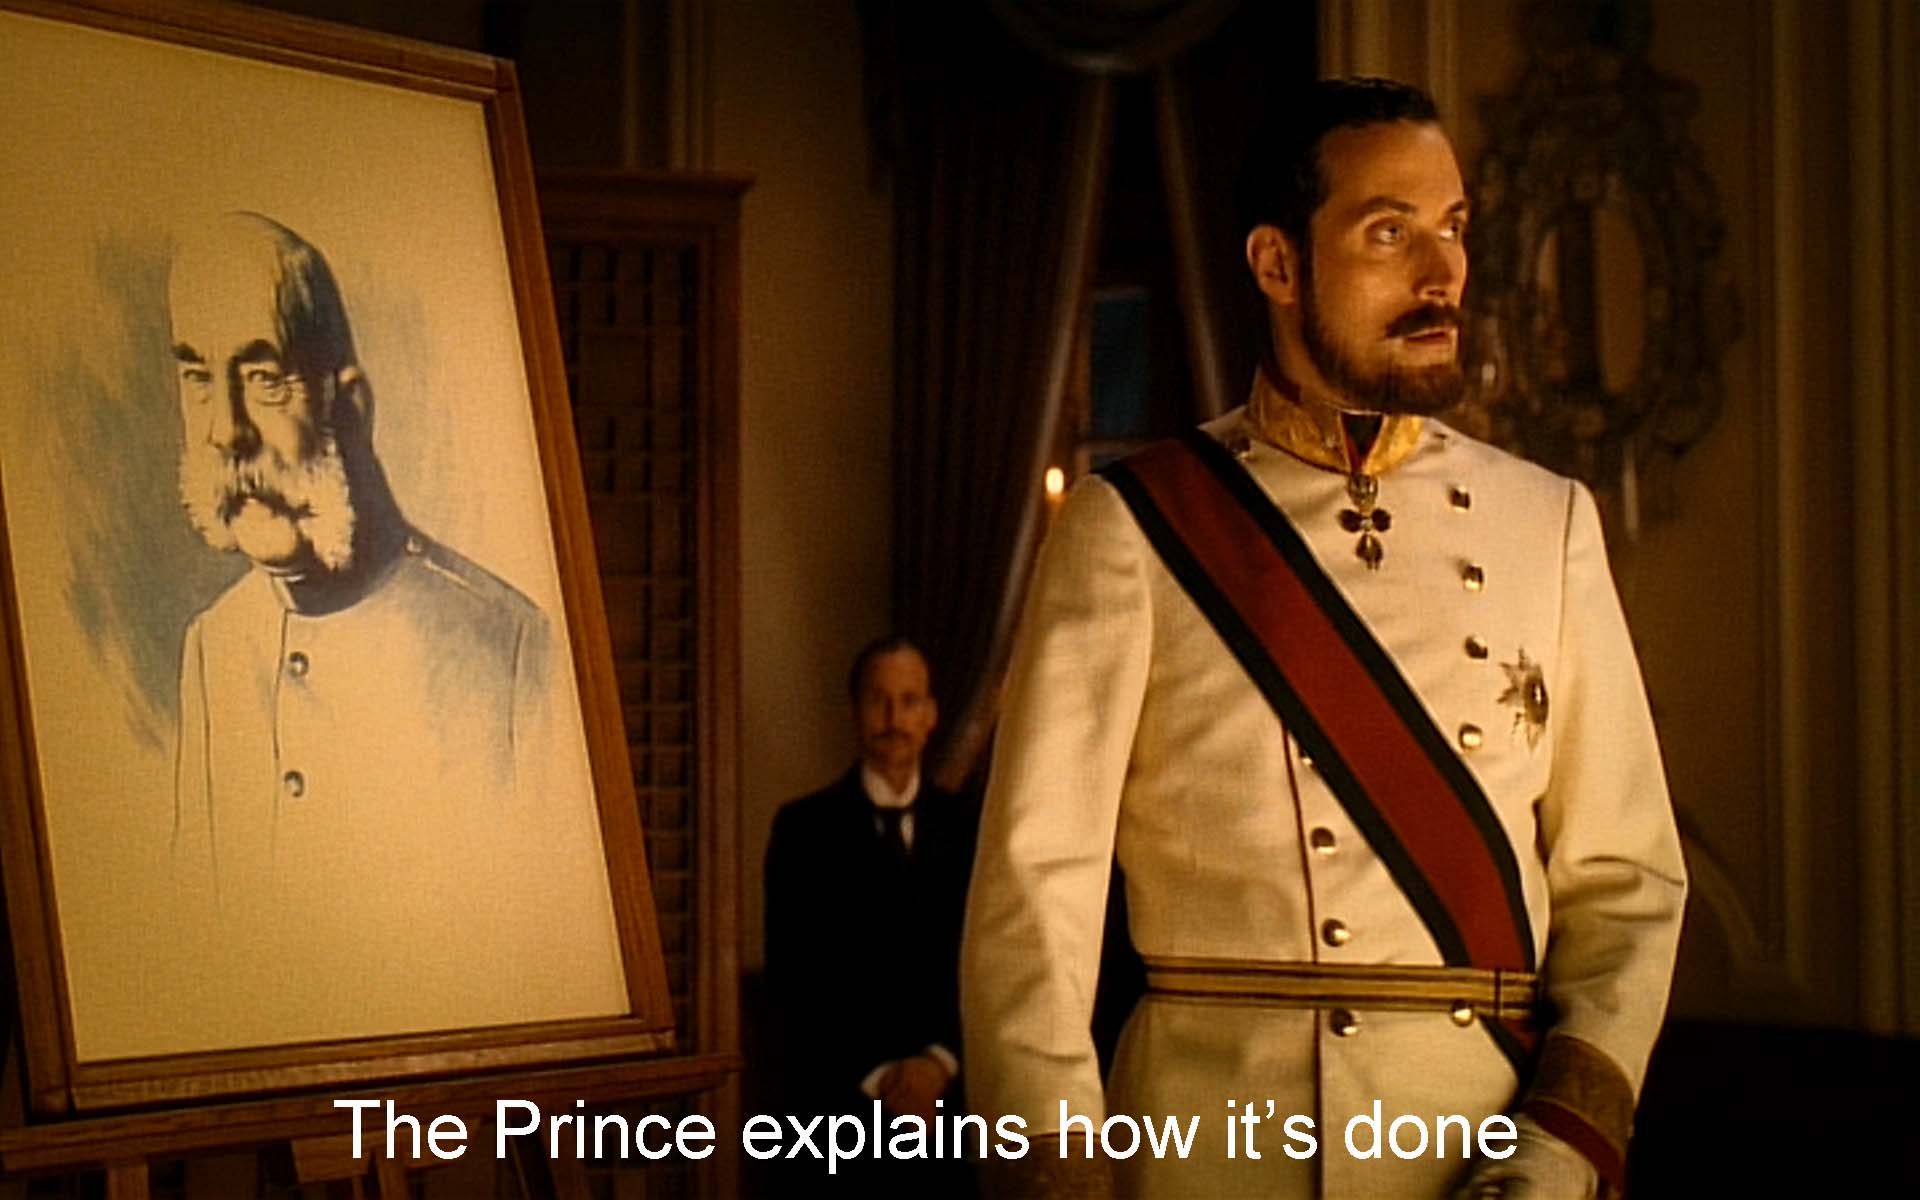 The Prince explains how it's done